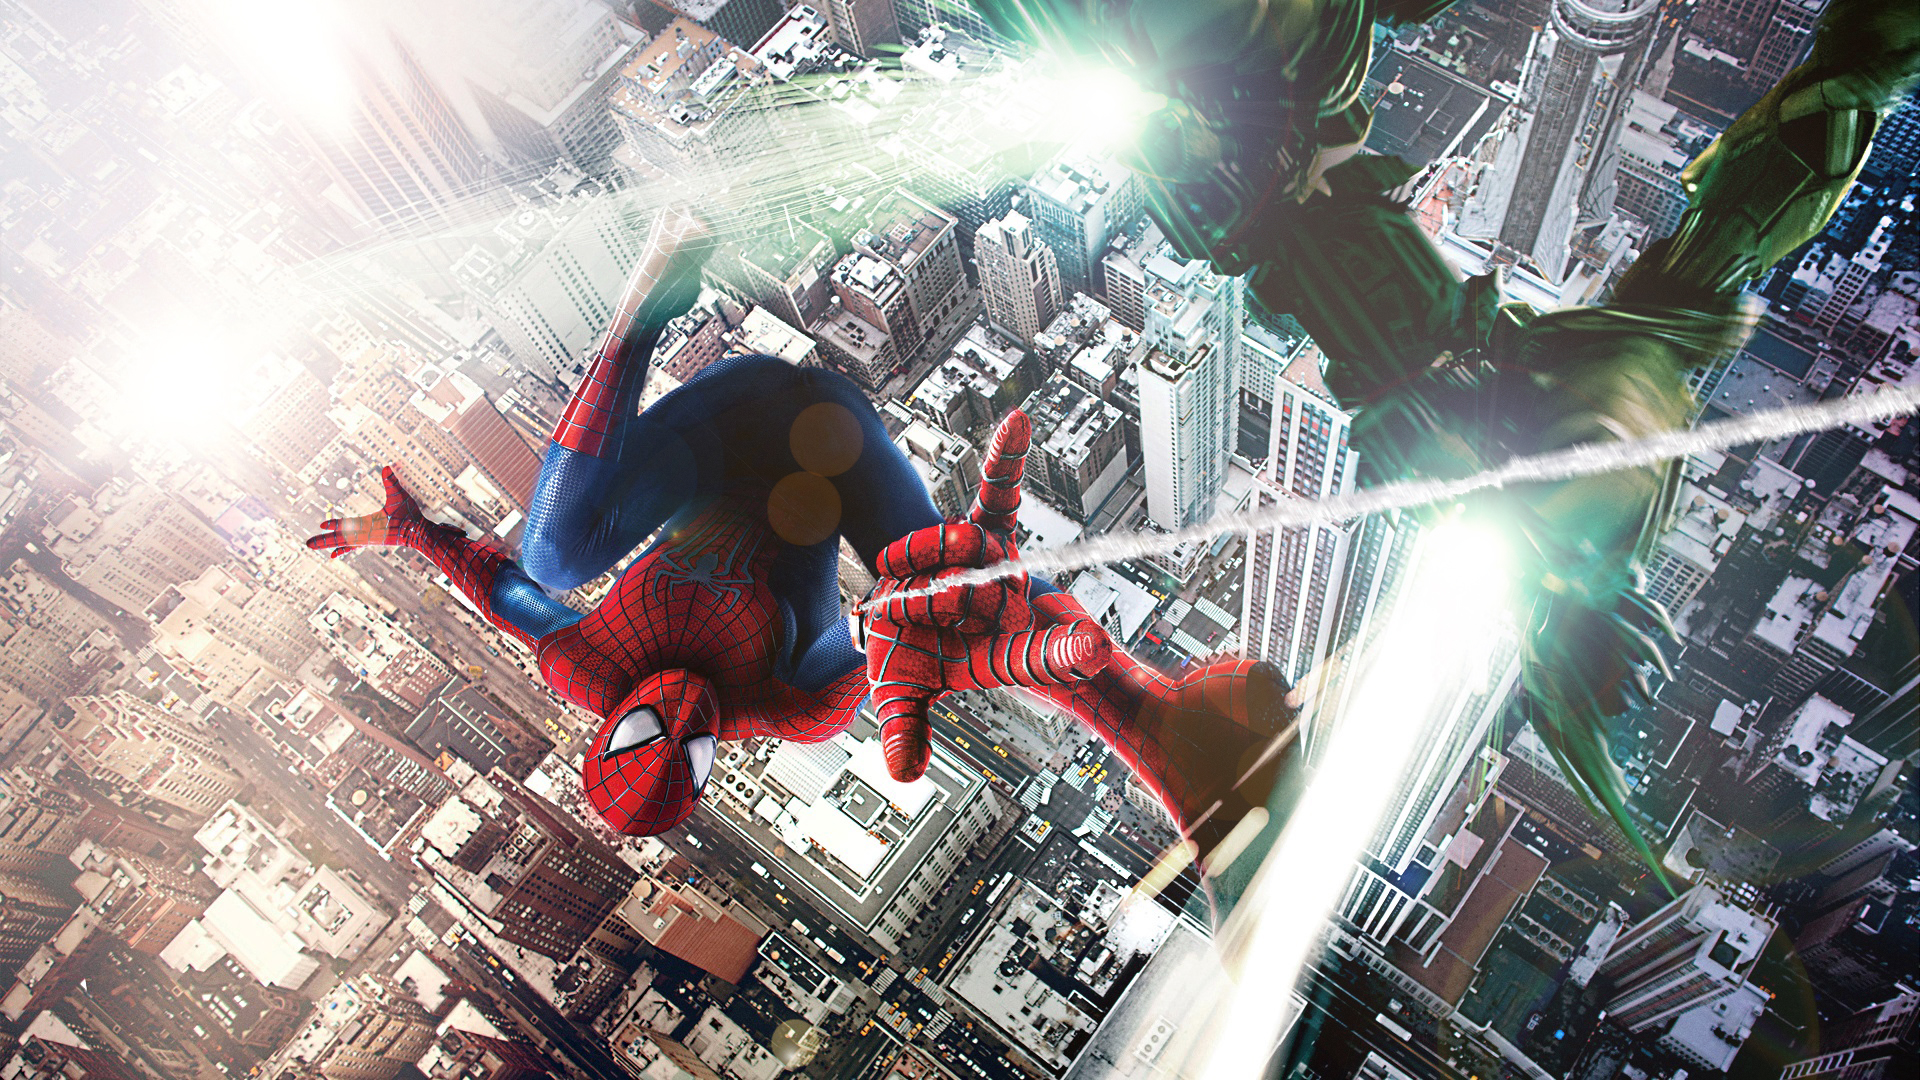 The Amazing Spider-Man 2 Movie Poster Wallpaper #3 by ...